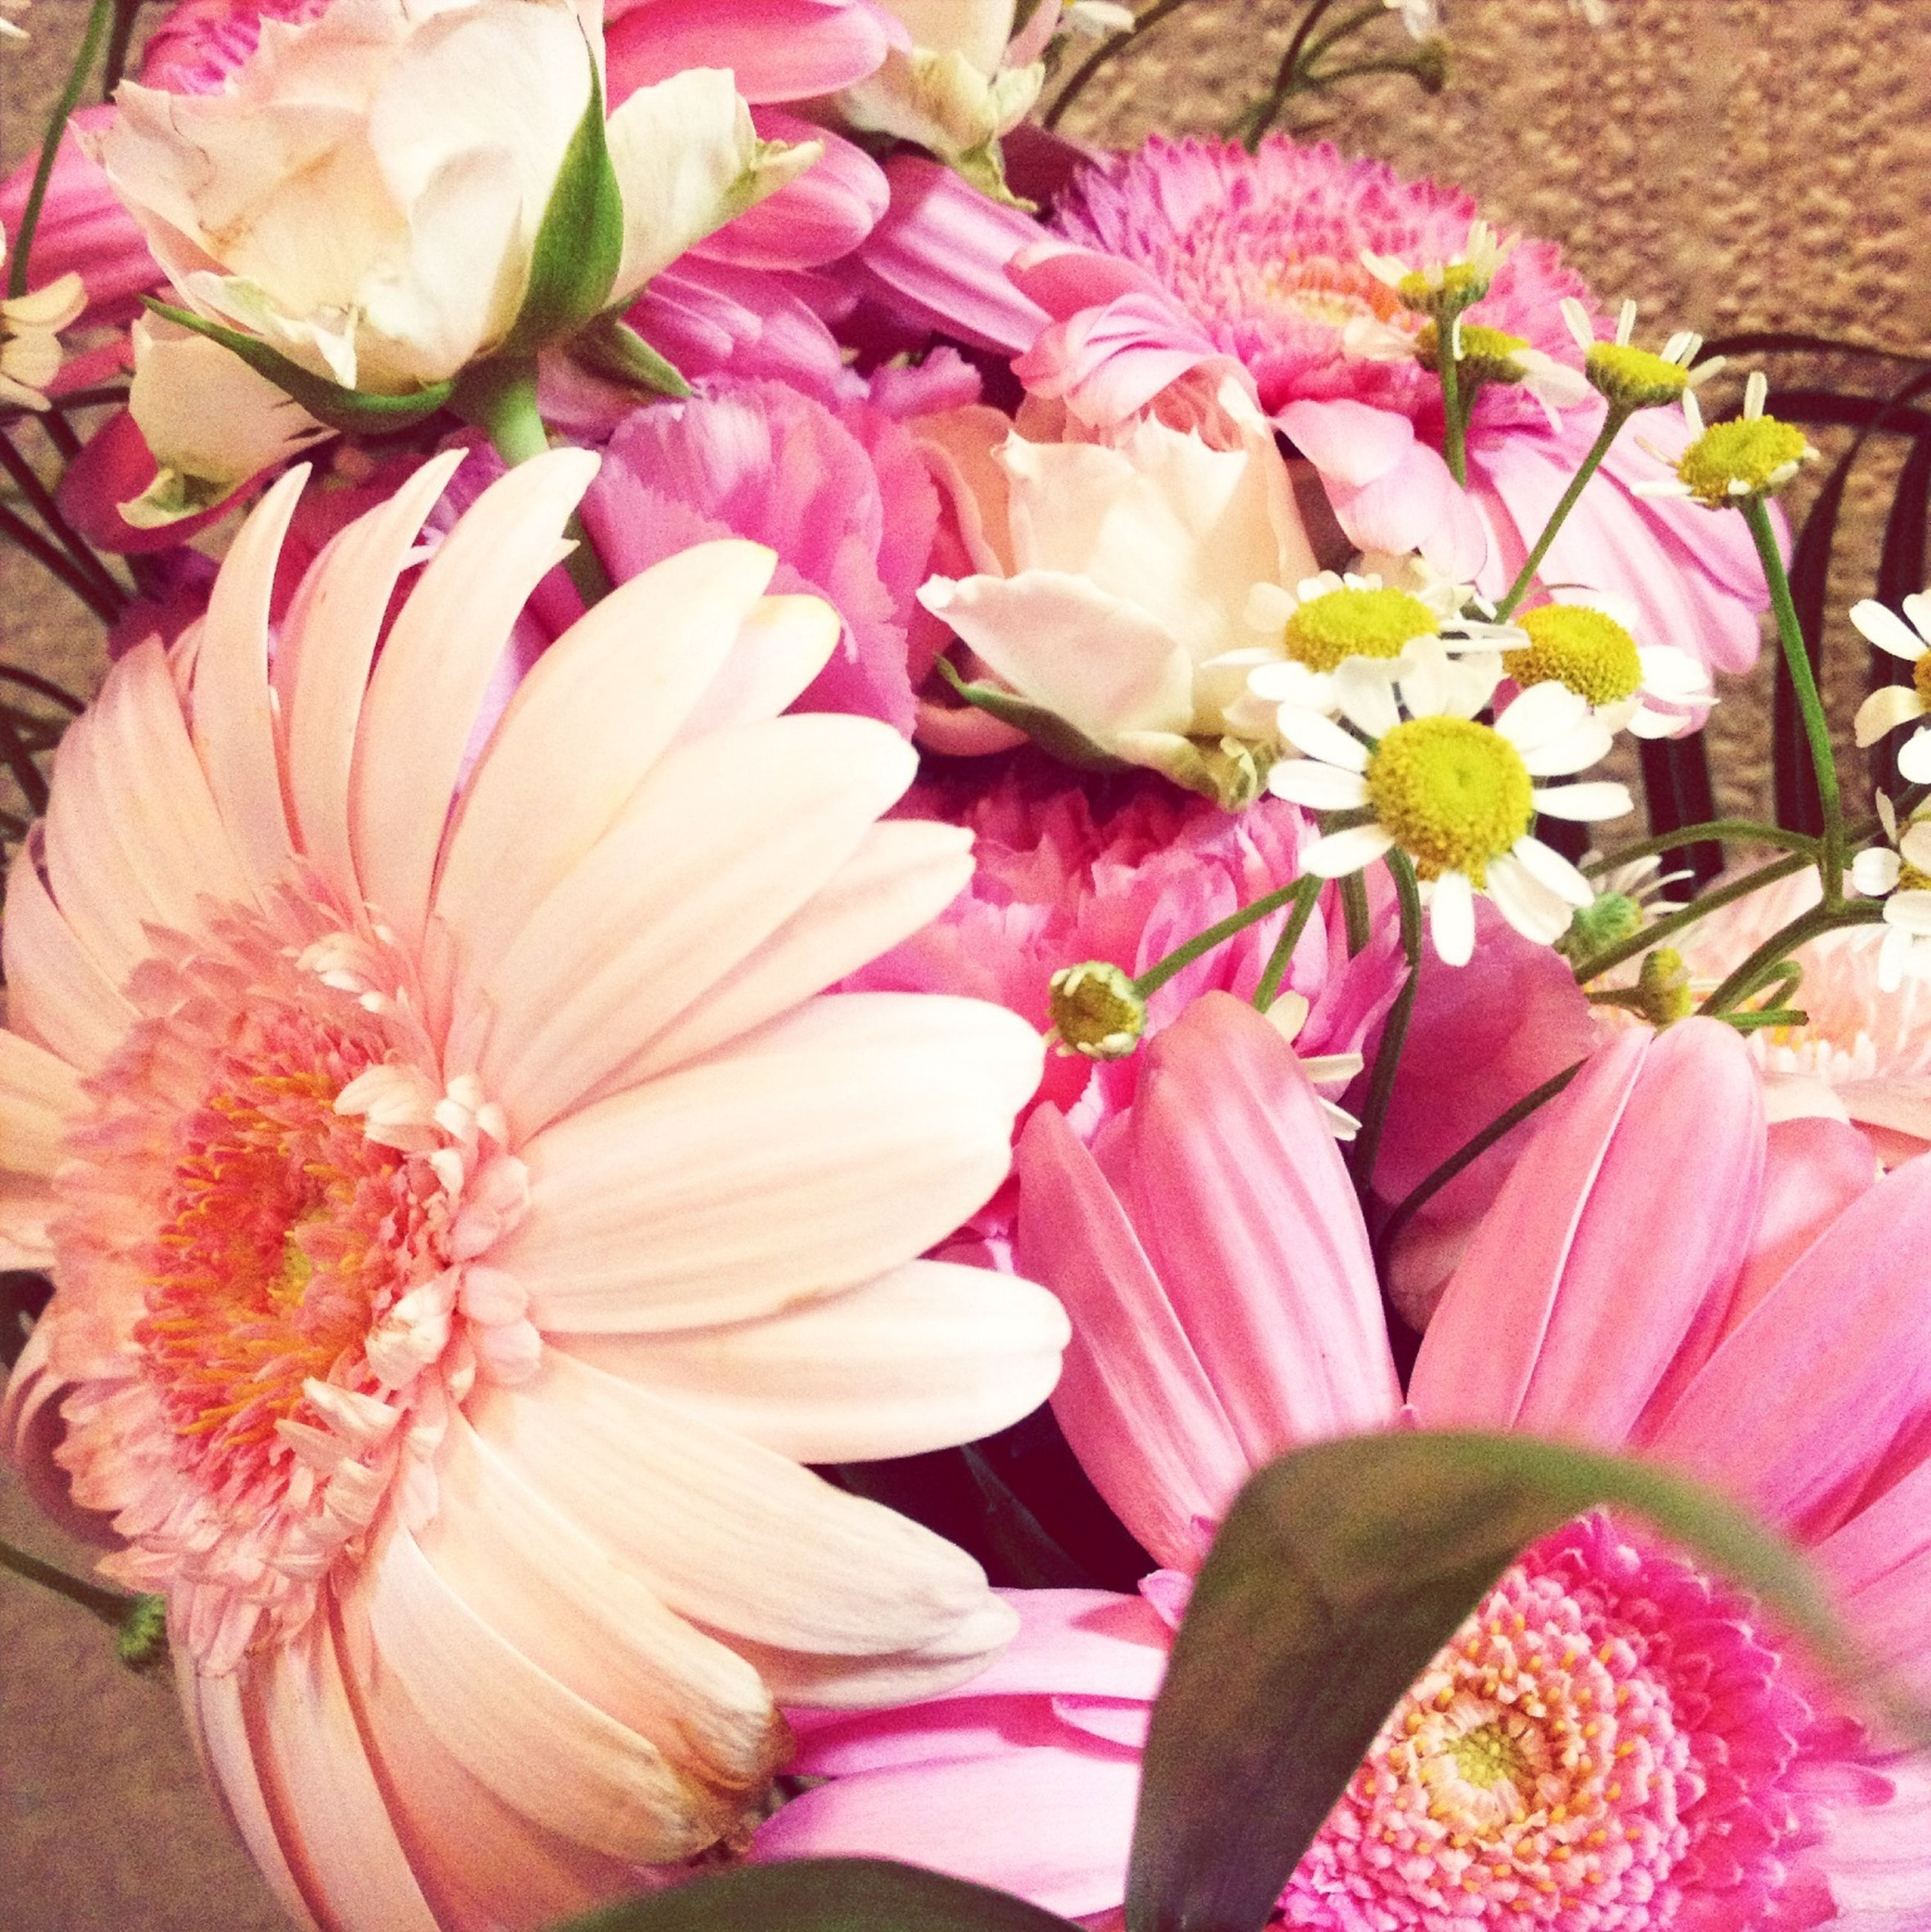 flower, freshness, petal, pink color, fragility, flower head, high angle view, close-up, full frame, variation, indoors, multi colored, beauty in nature, abundance, backgrounds, pink, nature, no people, still life, bouquet